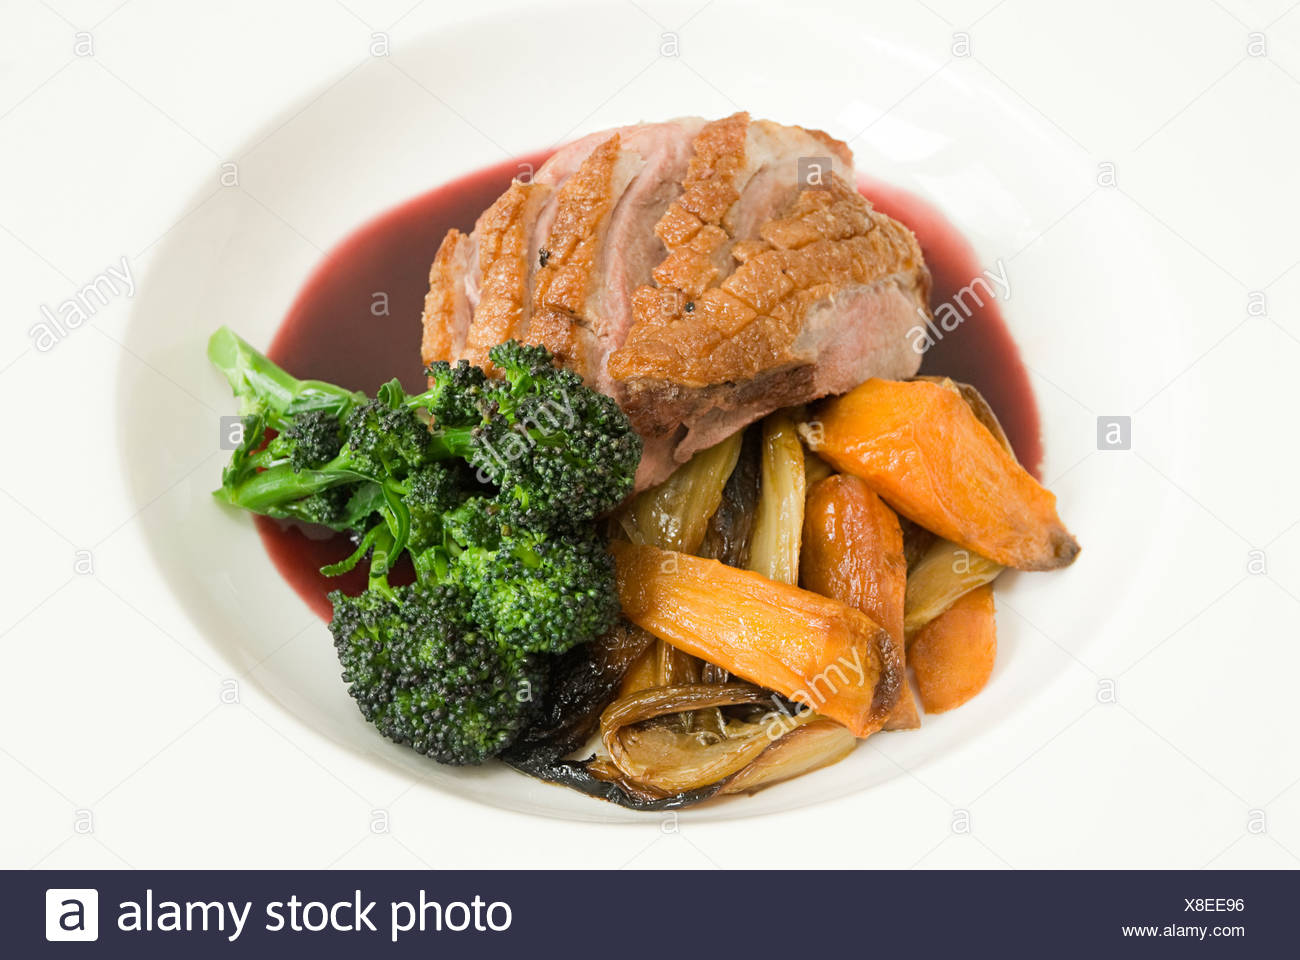 Roast duck with vegetables and jus - Stock Image